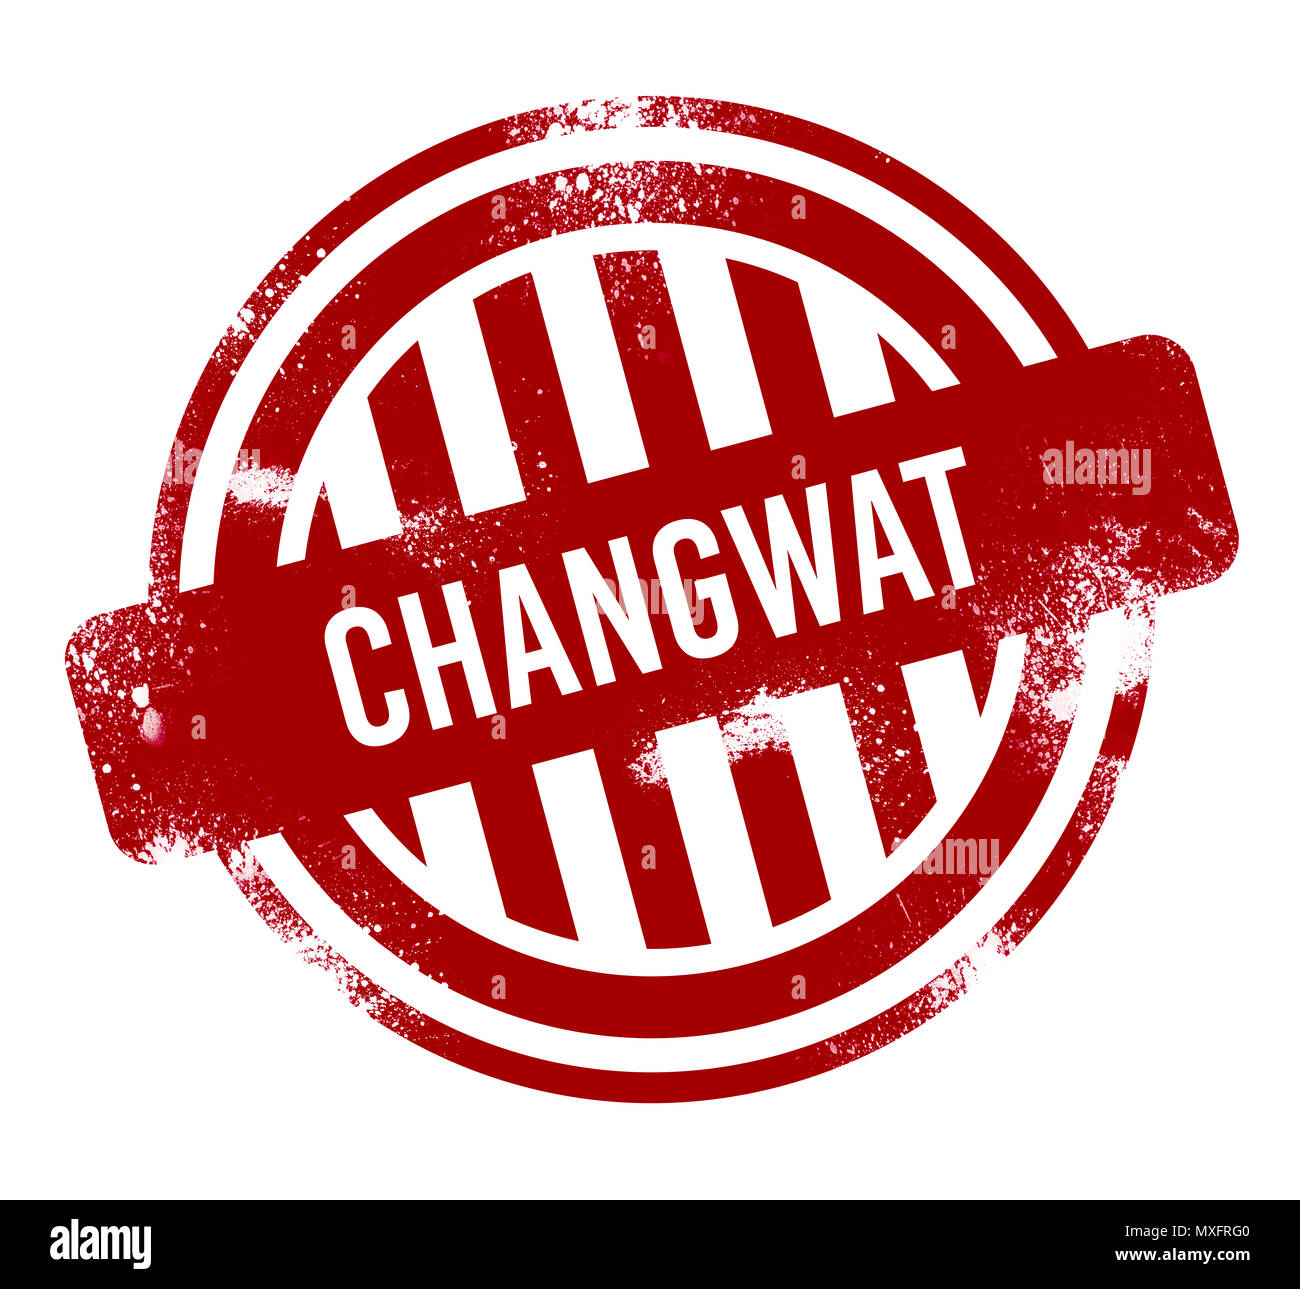 Changwat Chachoengsao - Red grunge button, stamp - Stock Image